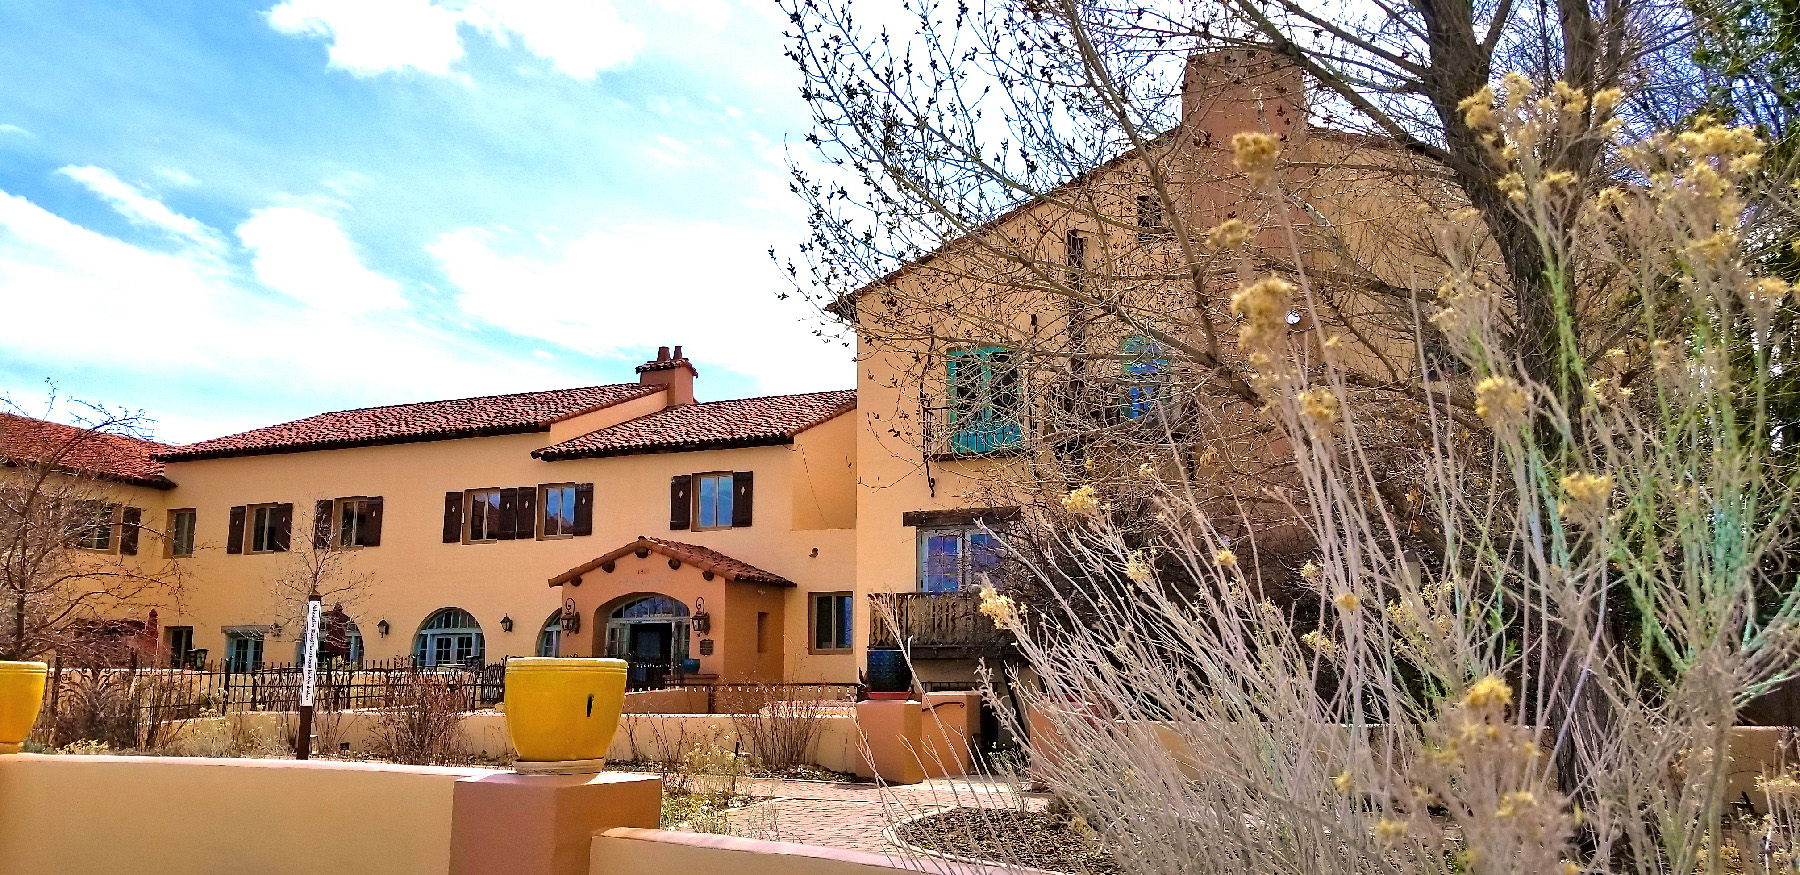 la posada hotel in winslow arizona